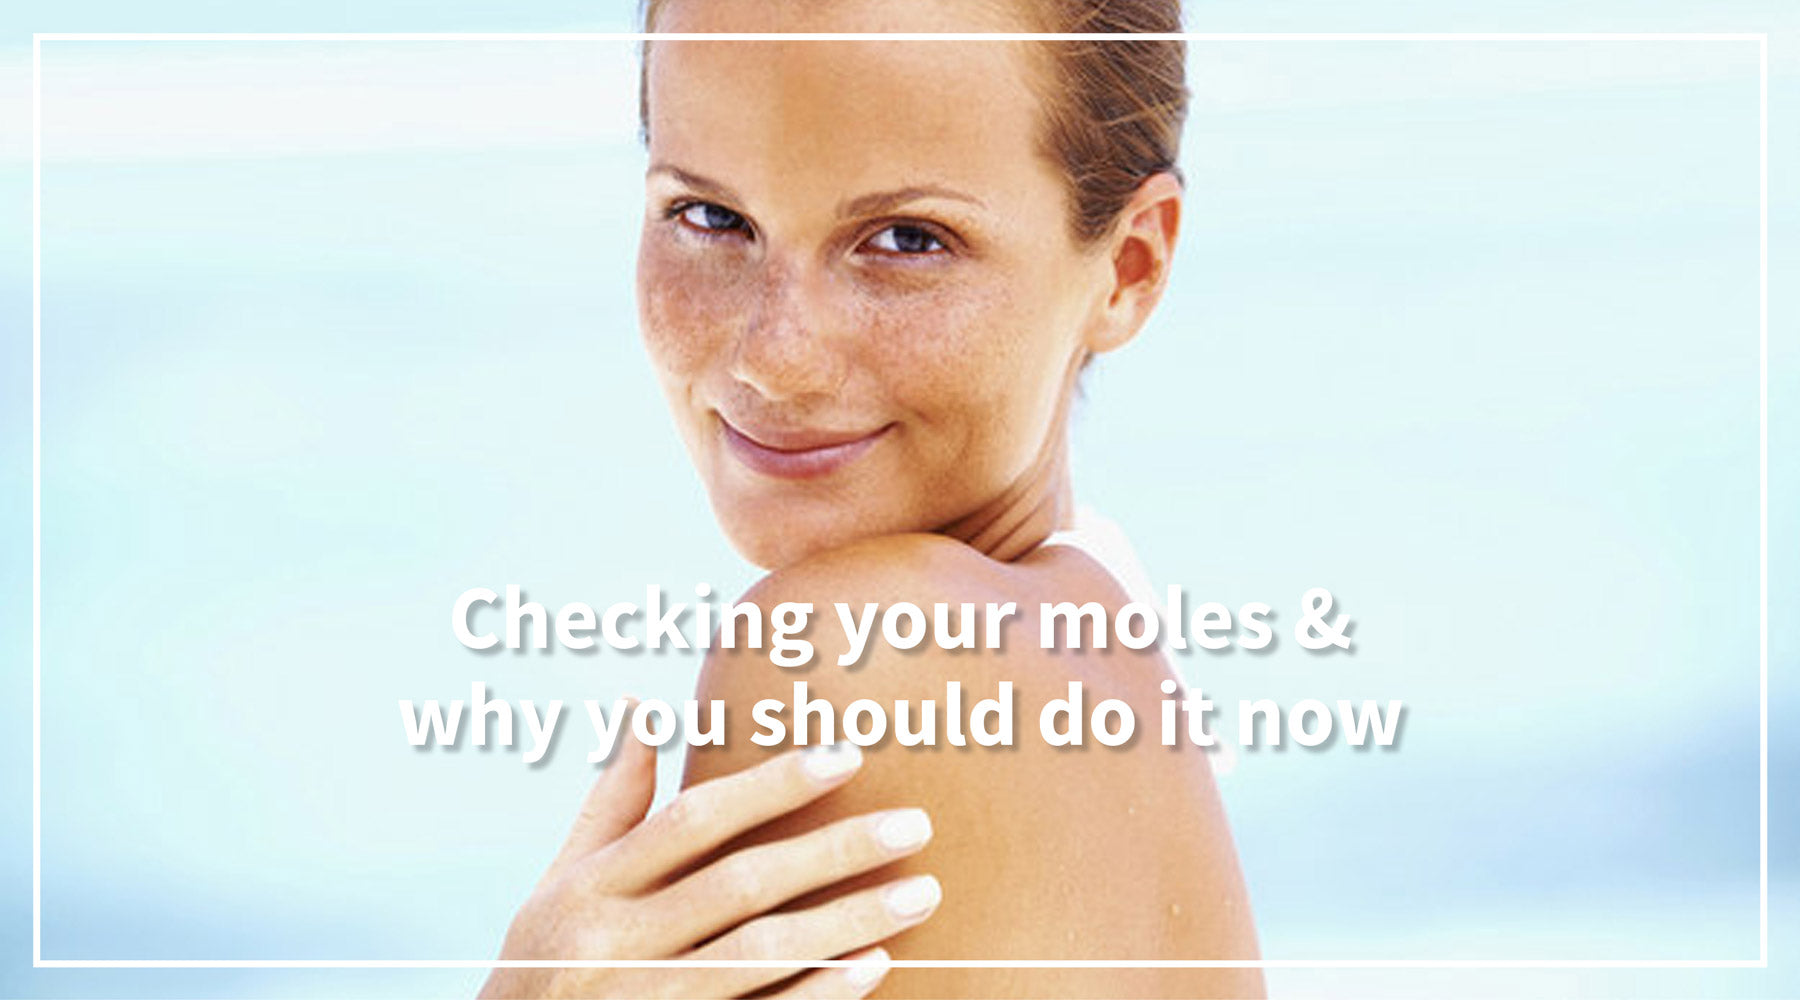 Checking your moles & why you should do it now